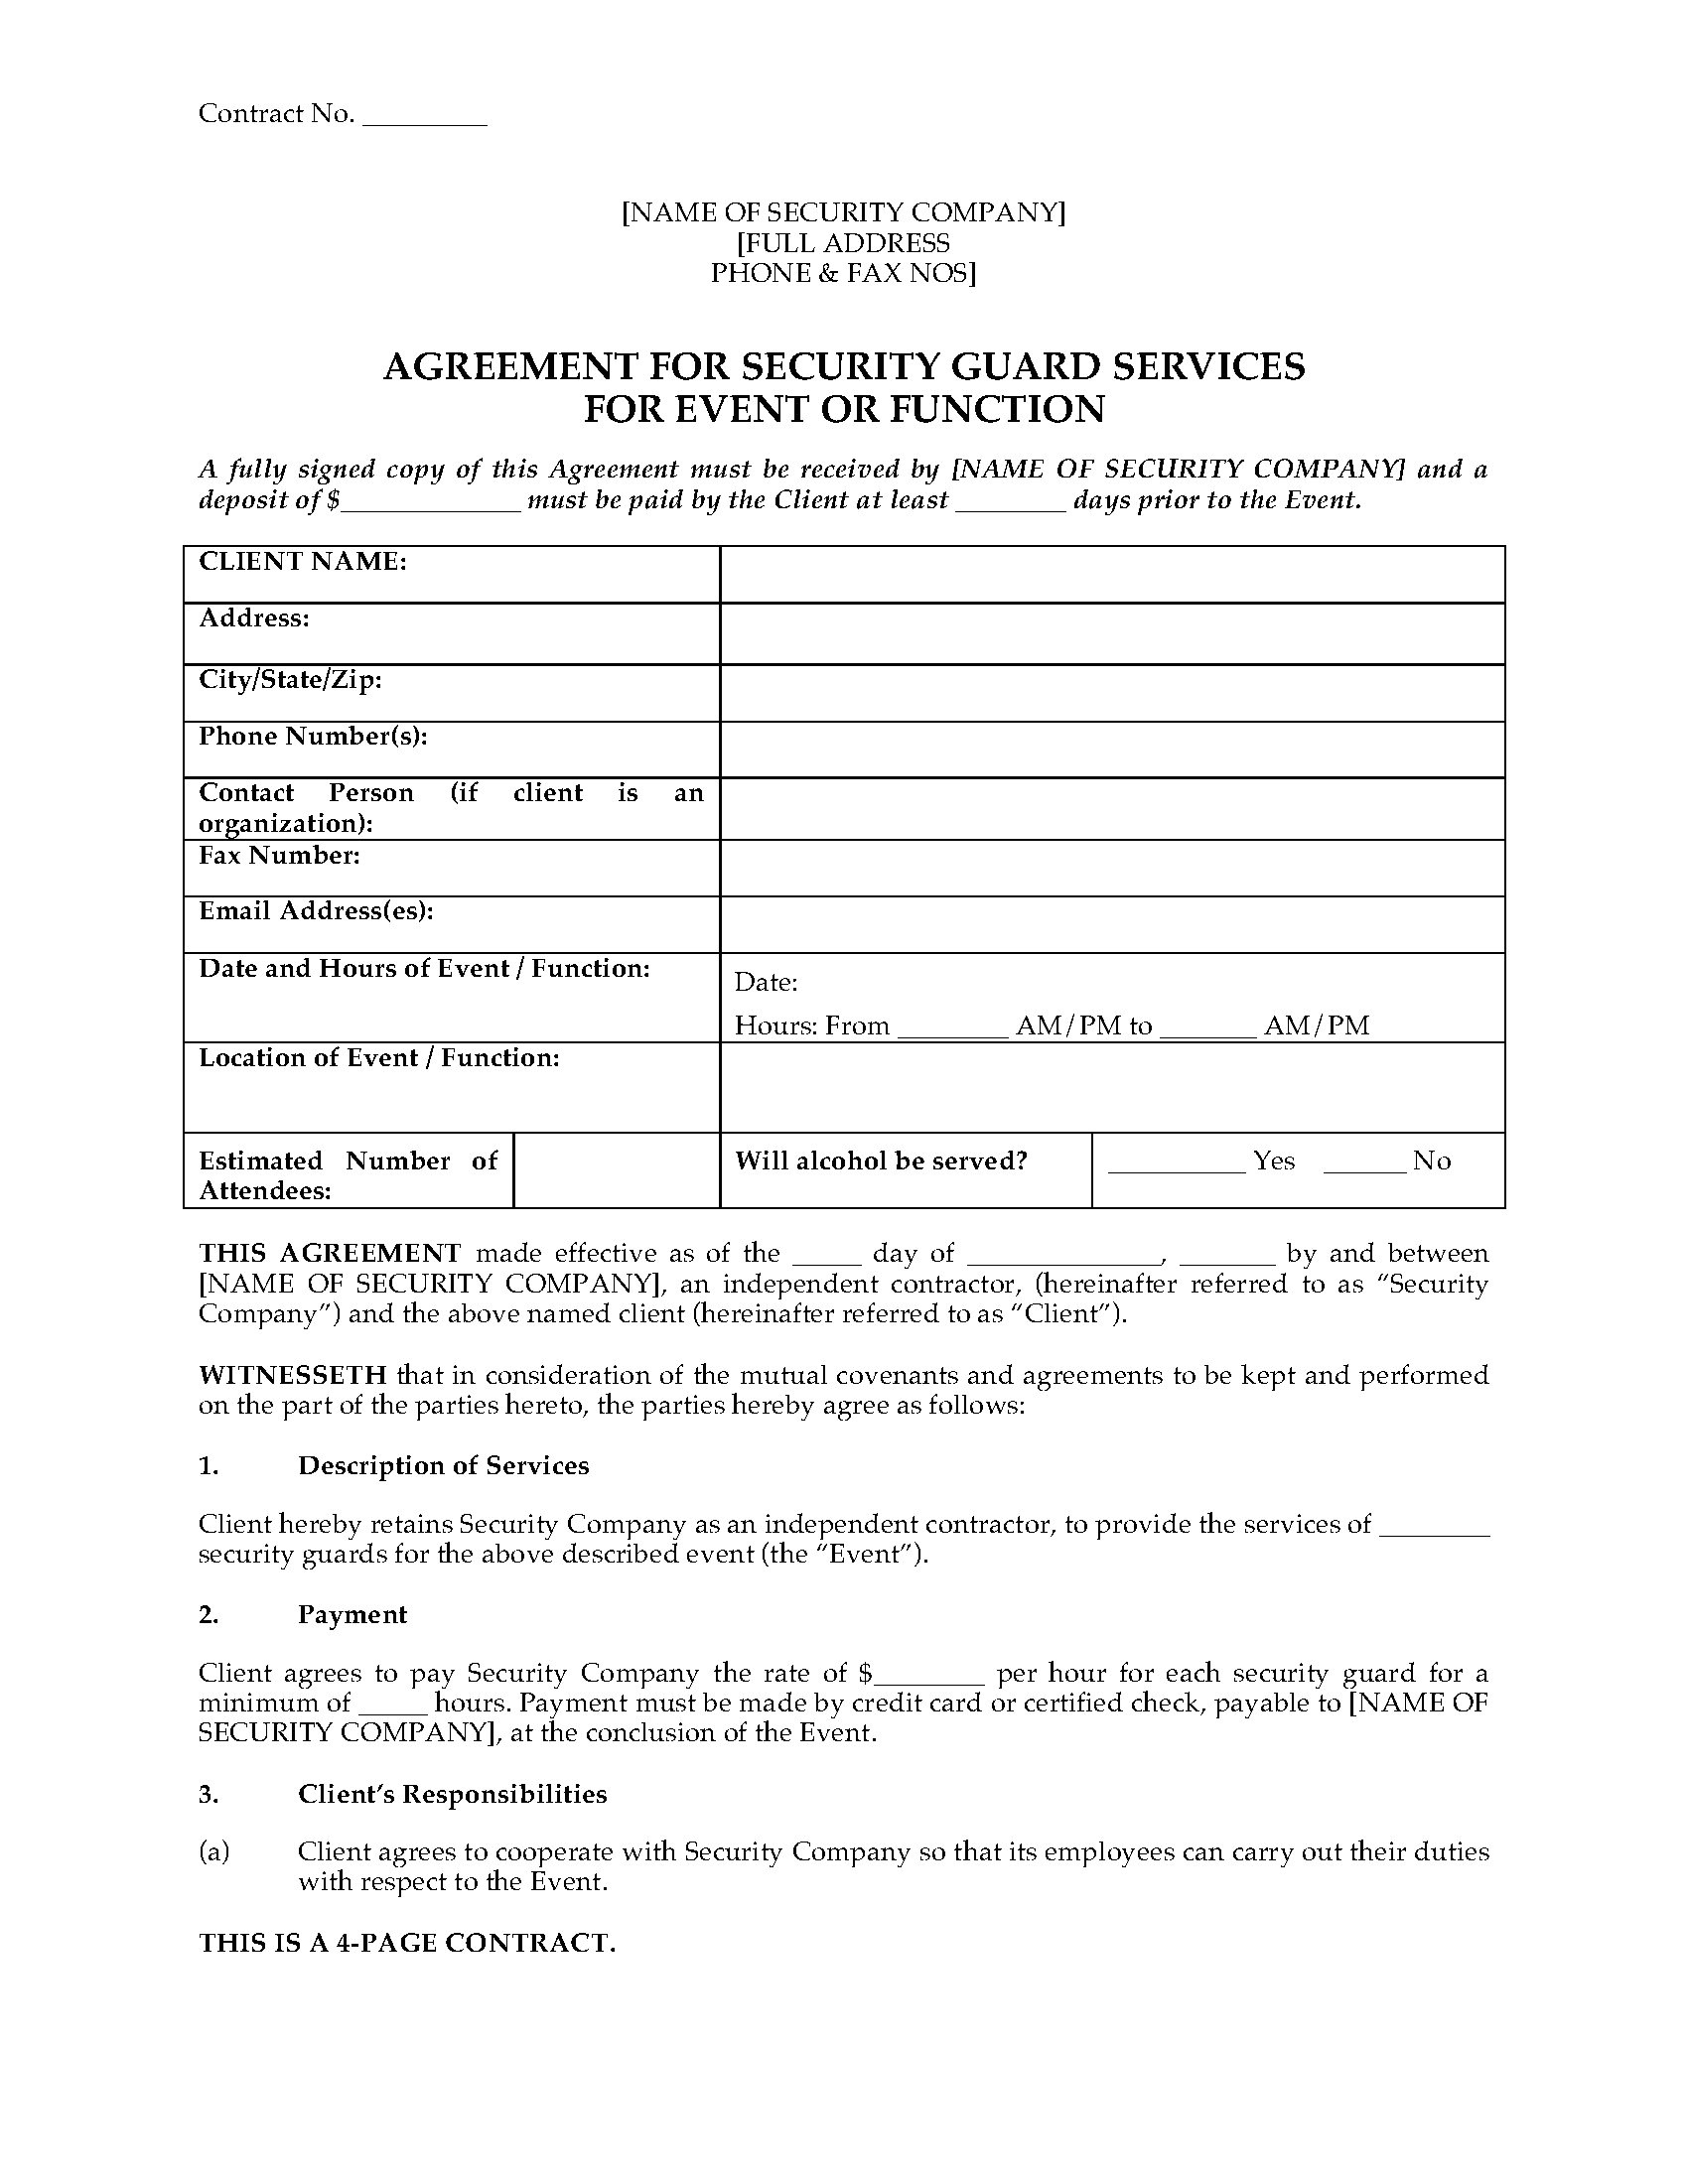 usa security guard agreement for event or function